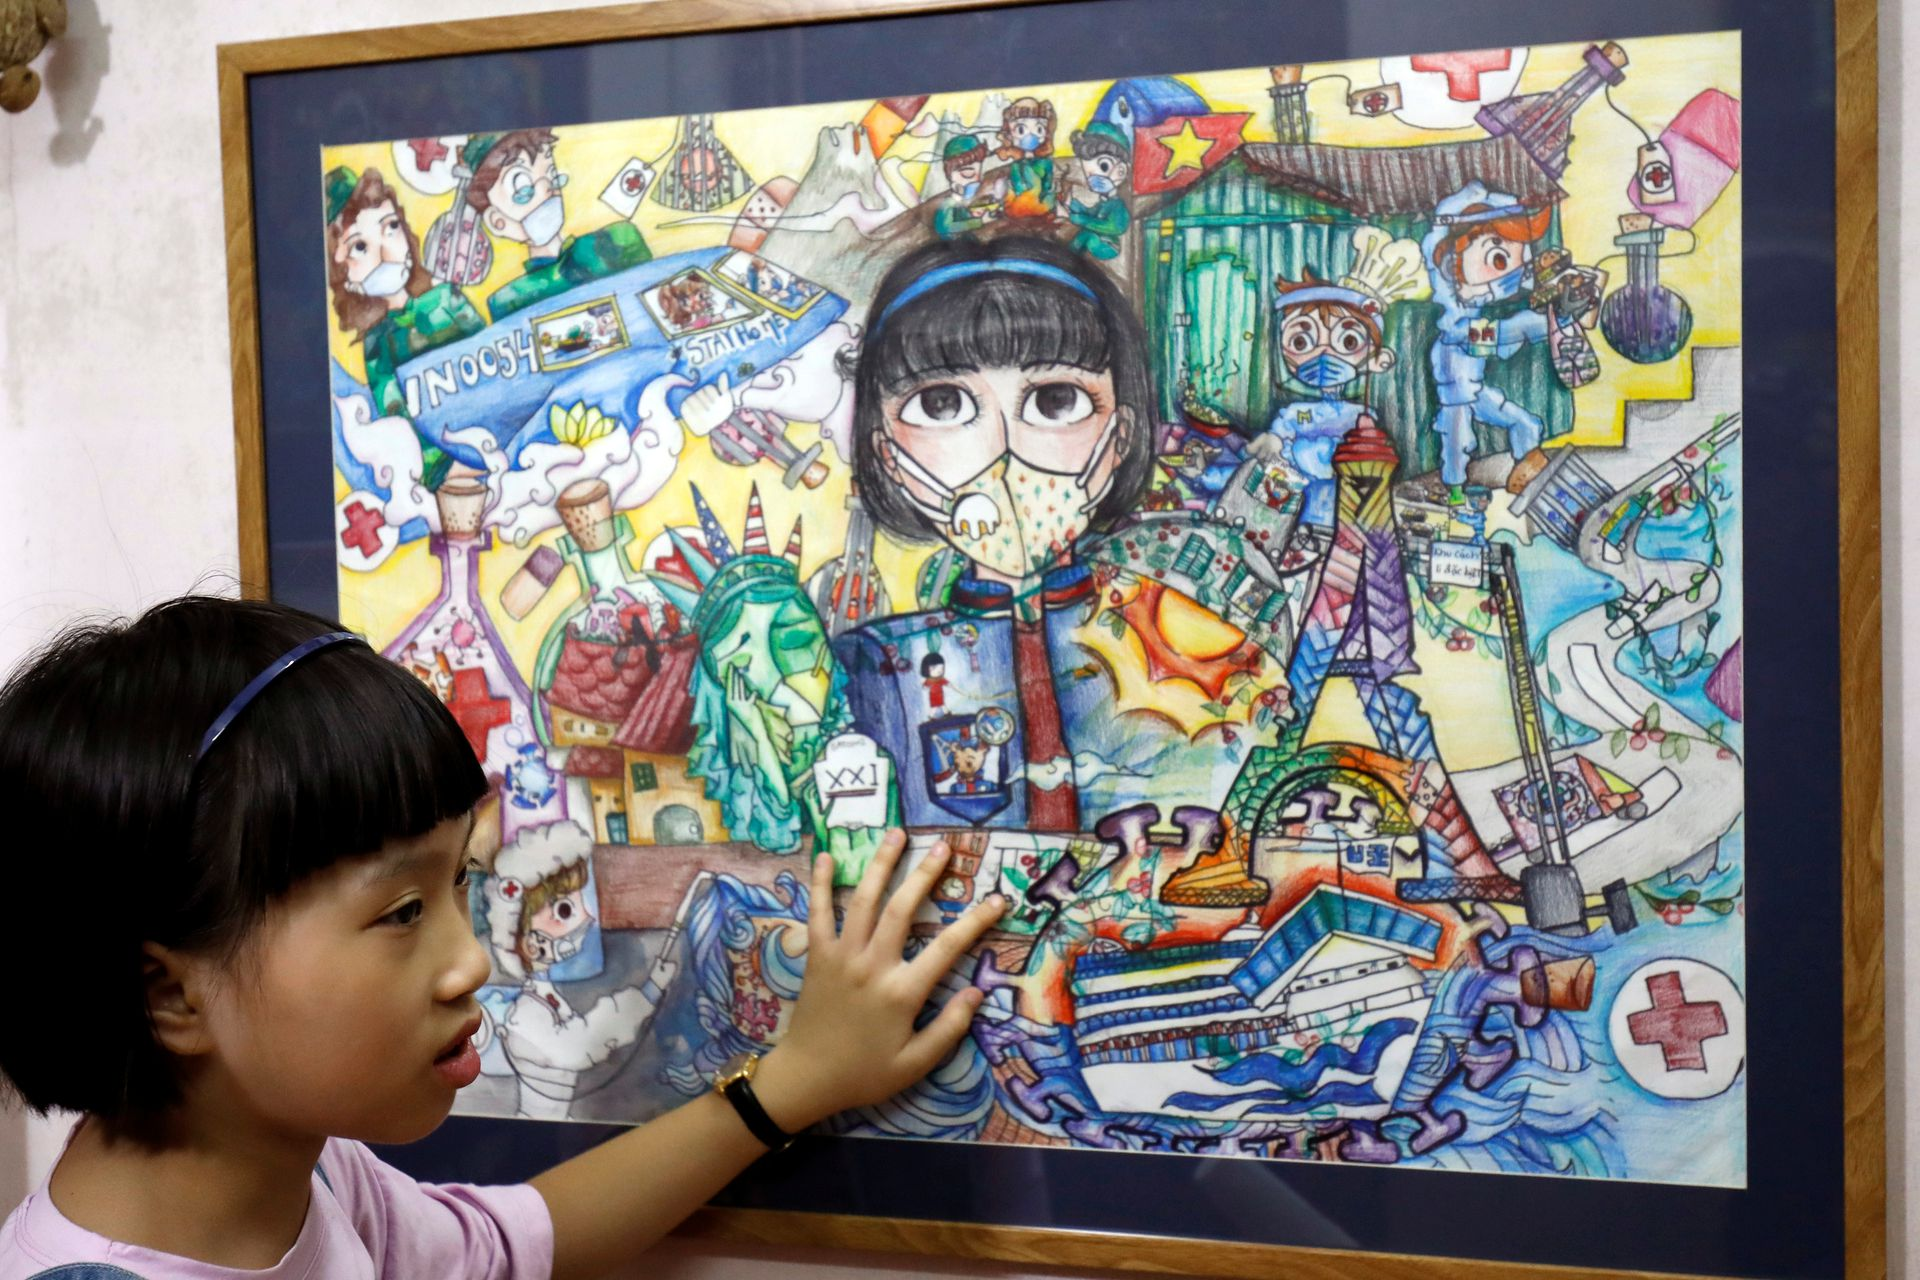 coronavirus themed paintings by vietnamese girl praised intl media